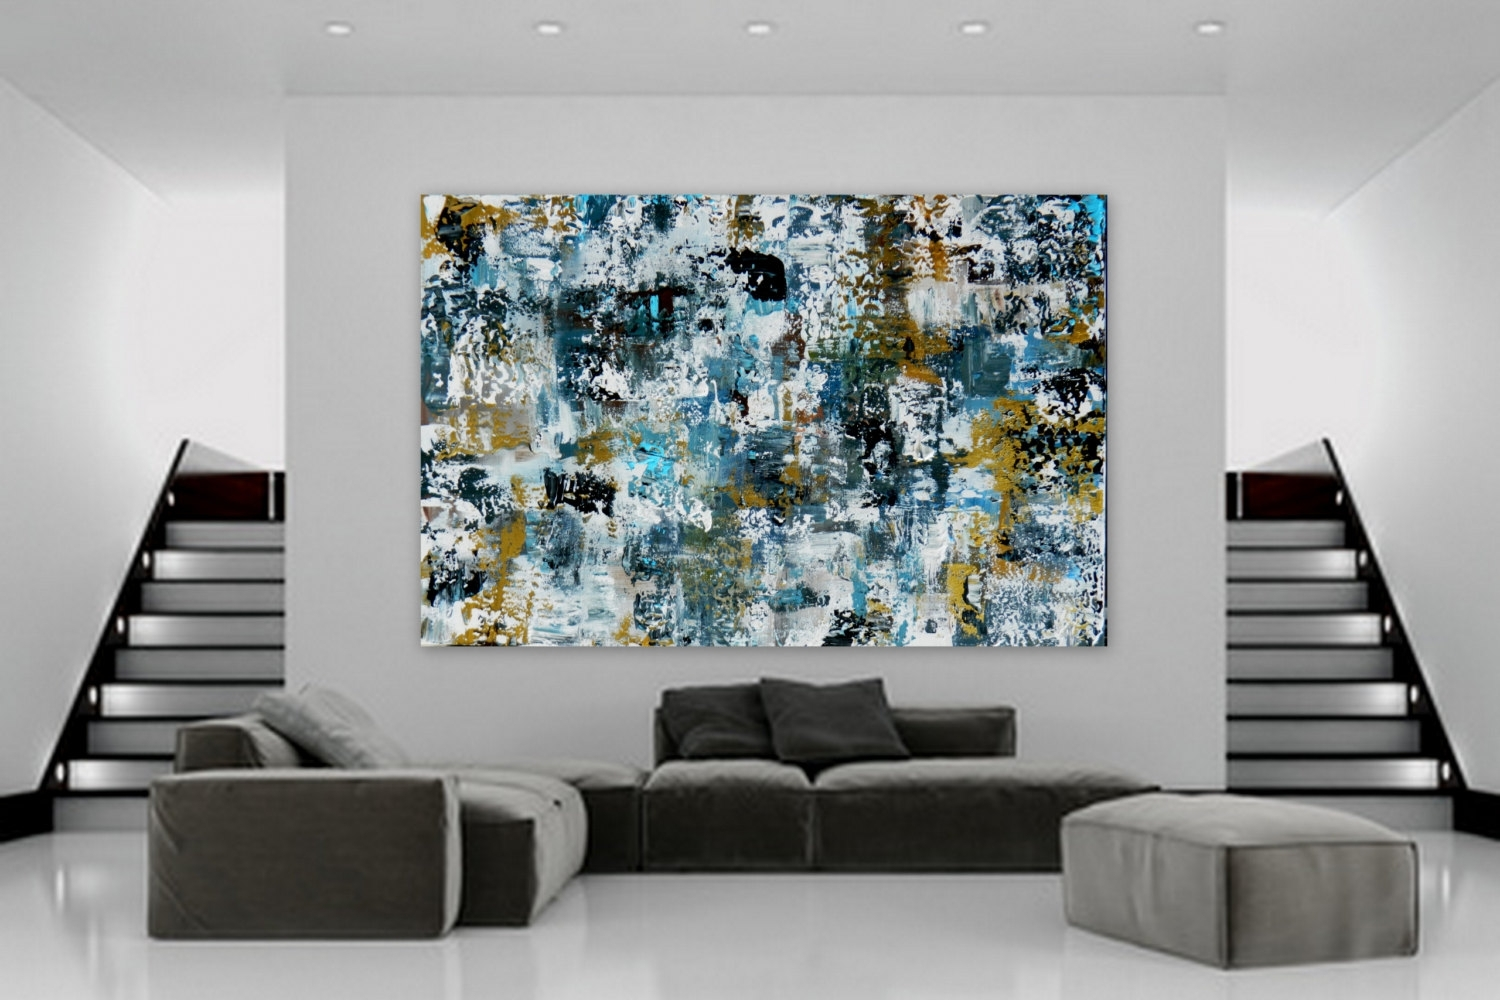 Sample Huge Abstract Modern Contemporary Paintingmarcy Chapman within Contemporary Wall Art Decors (Image 16 of 20)